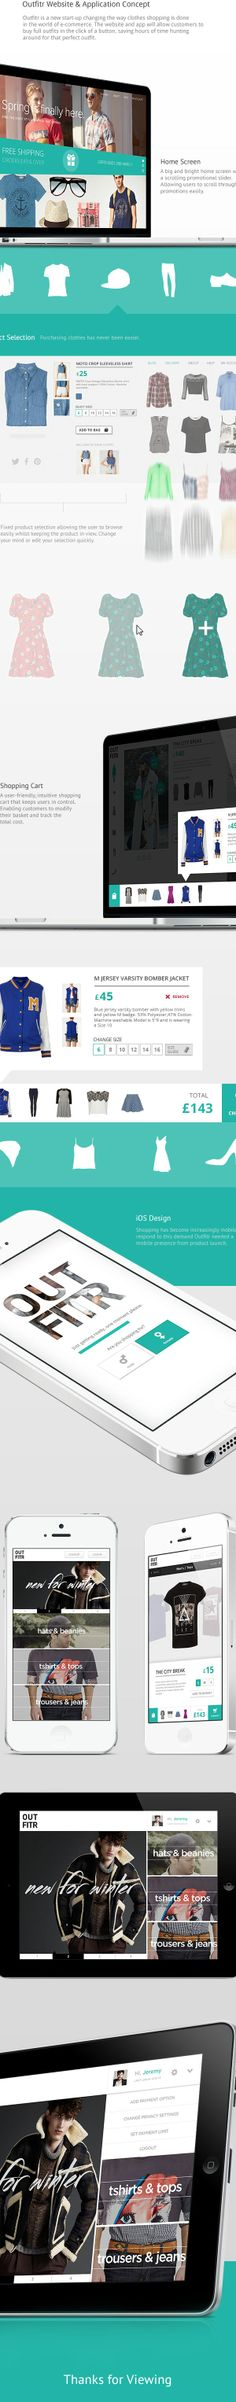 Outfitr Website  App by Jonathan Kelley, via Behance